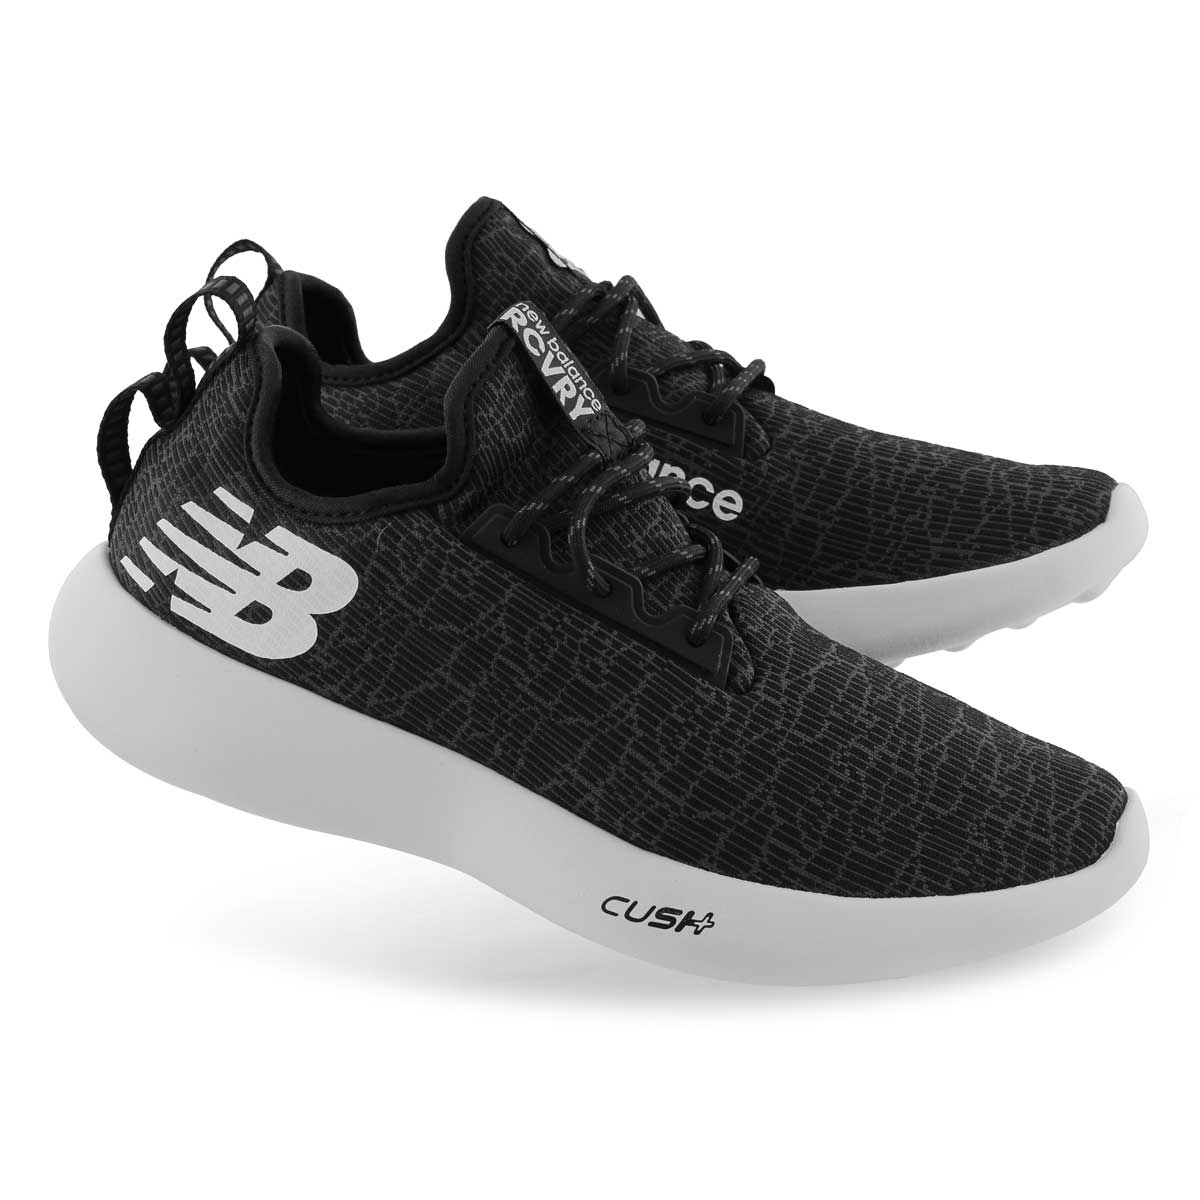 Mns Recovery black/white lace up sneaker